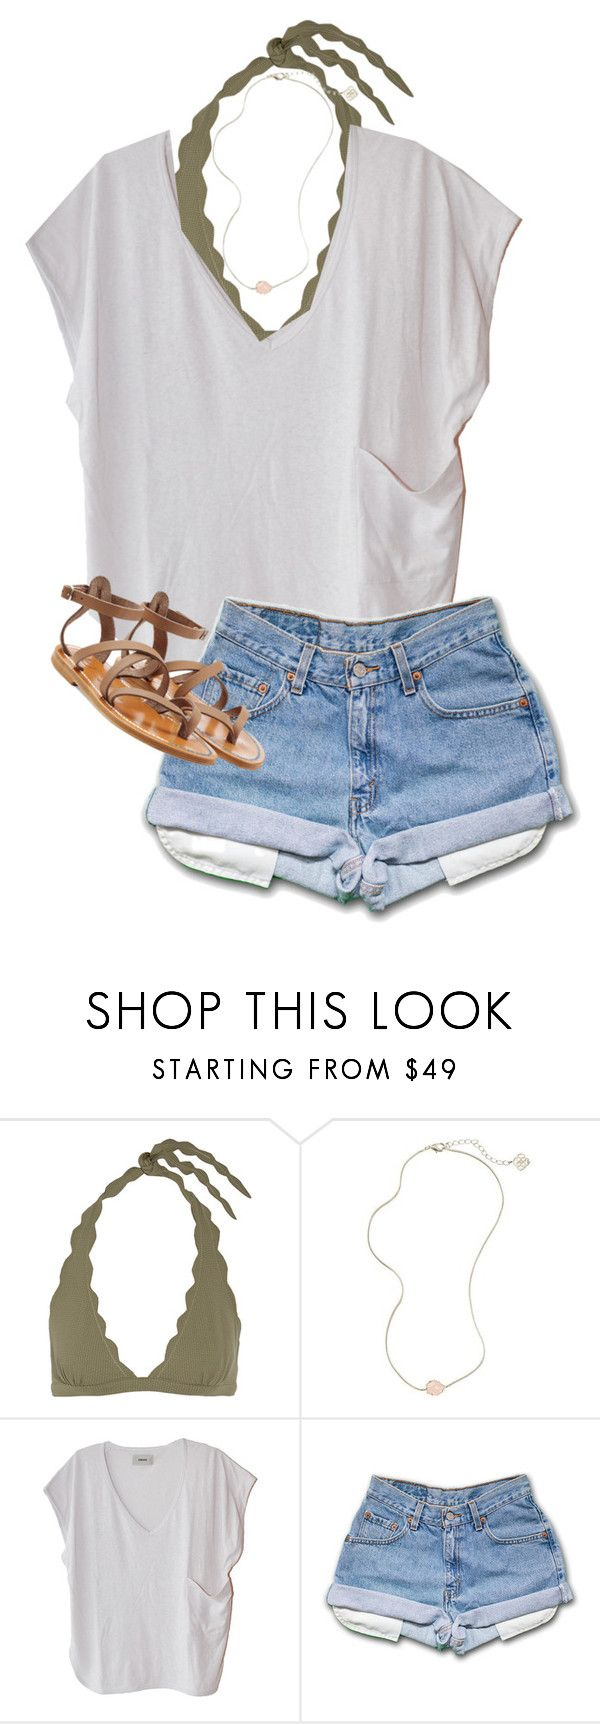 """Beach dayz"" by cait926 ❤ liked on Polyvore featuring Marysia Swim, Kendra Scott, Humanoid and K. Jacques"